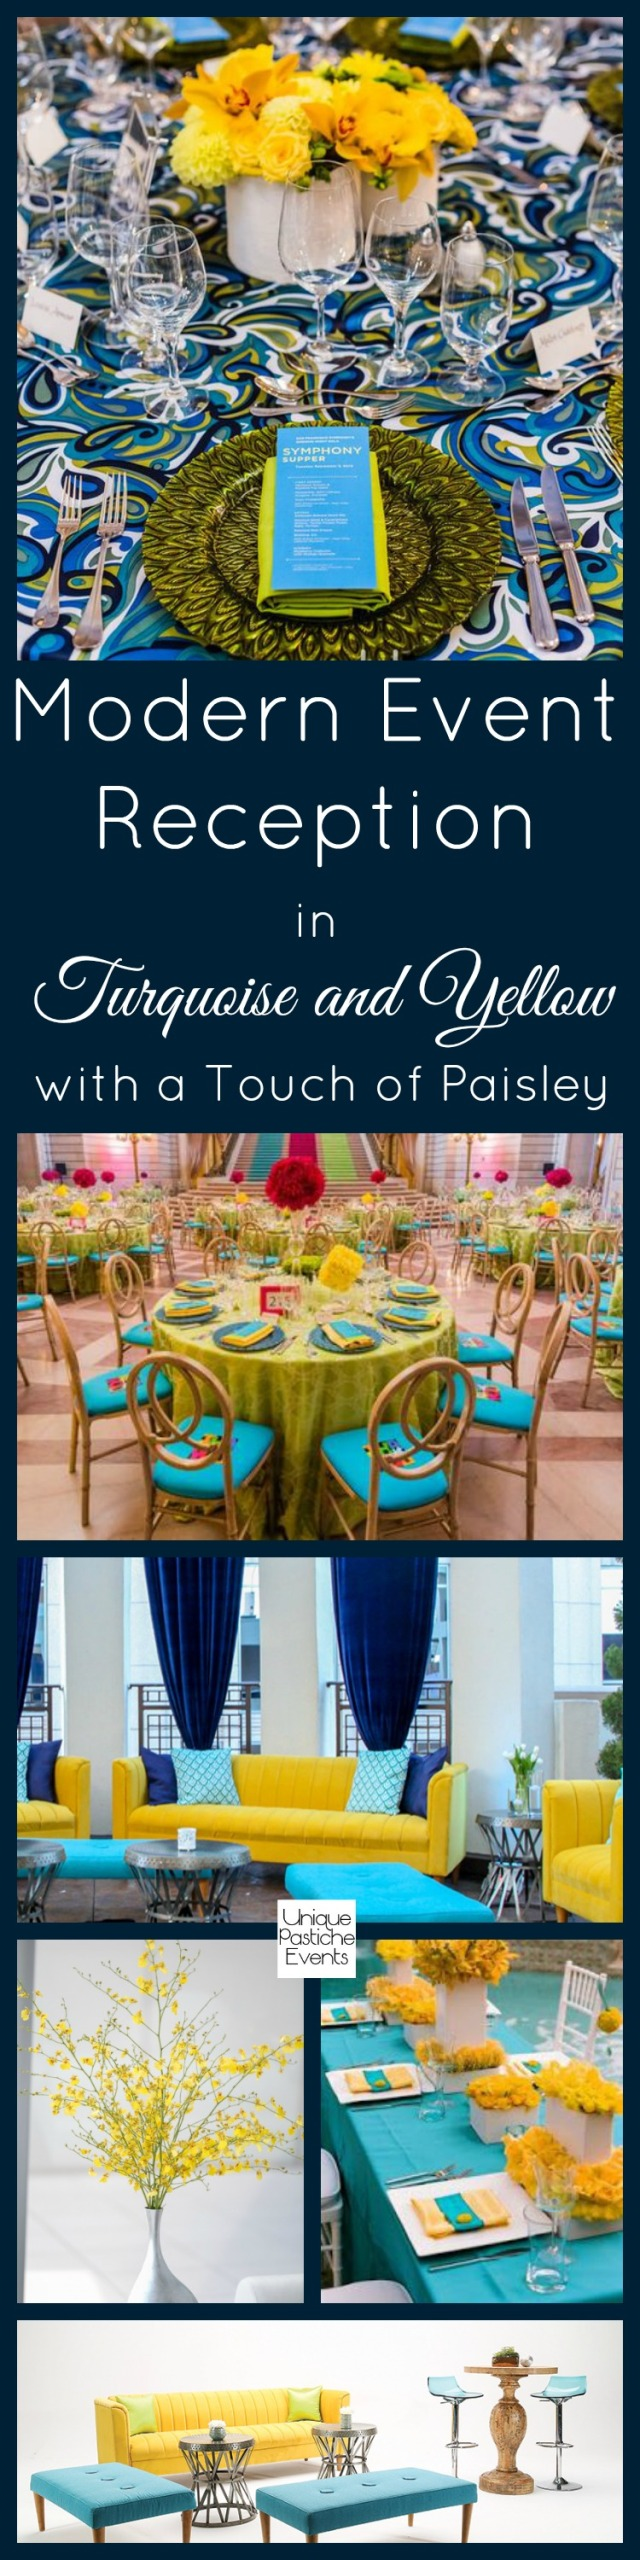 Modern Event Reception in Turquoise and Yellow (with a Touch of Paisley) by Unique Pastiche Events